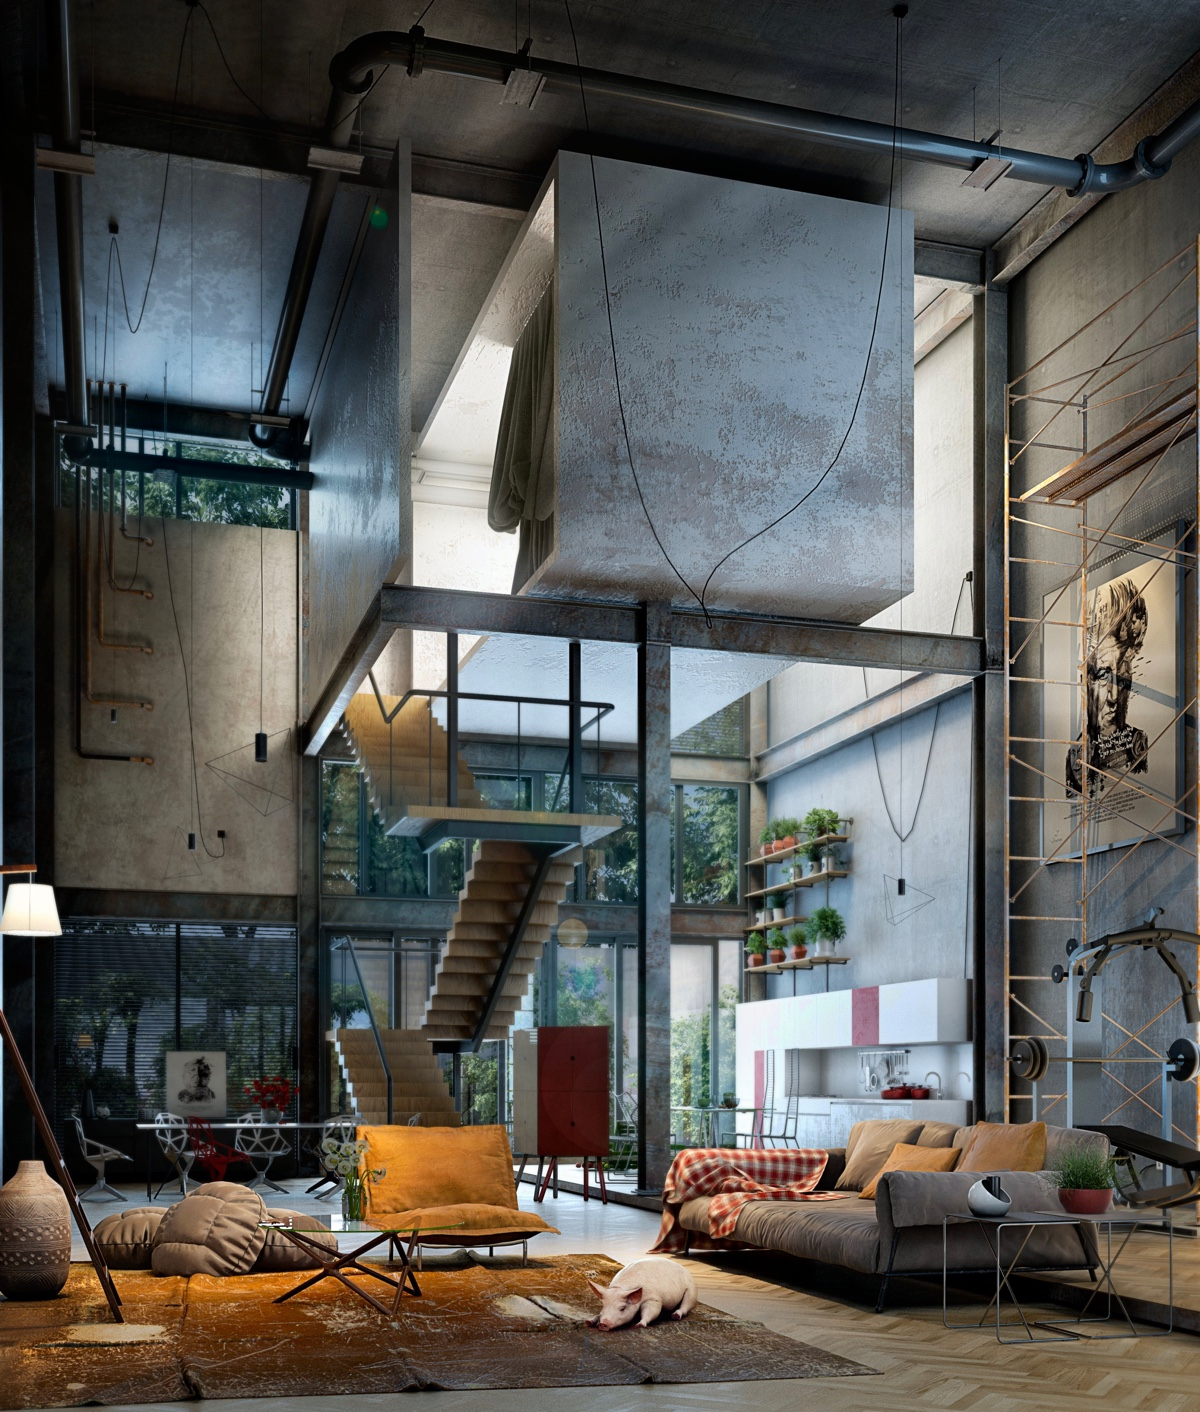 Modern Home Plans With Lofts: 40 Incredible Lofts That Push Boundaries